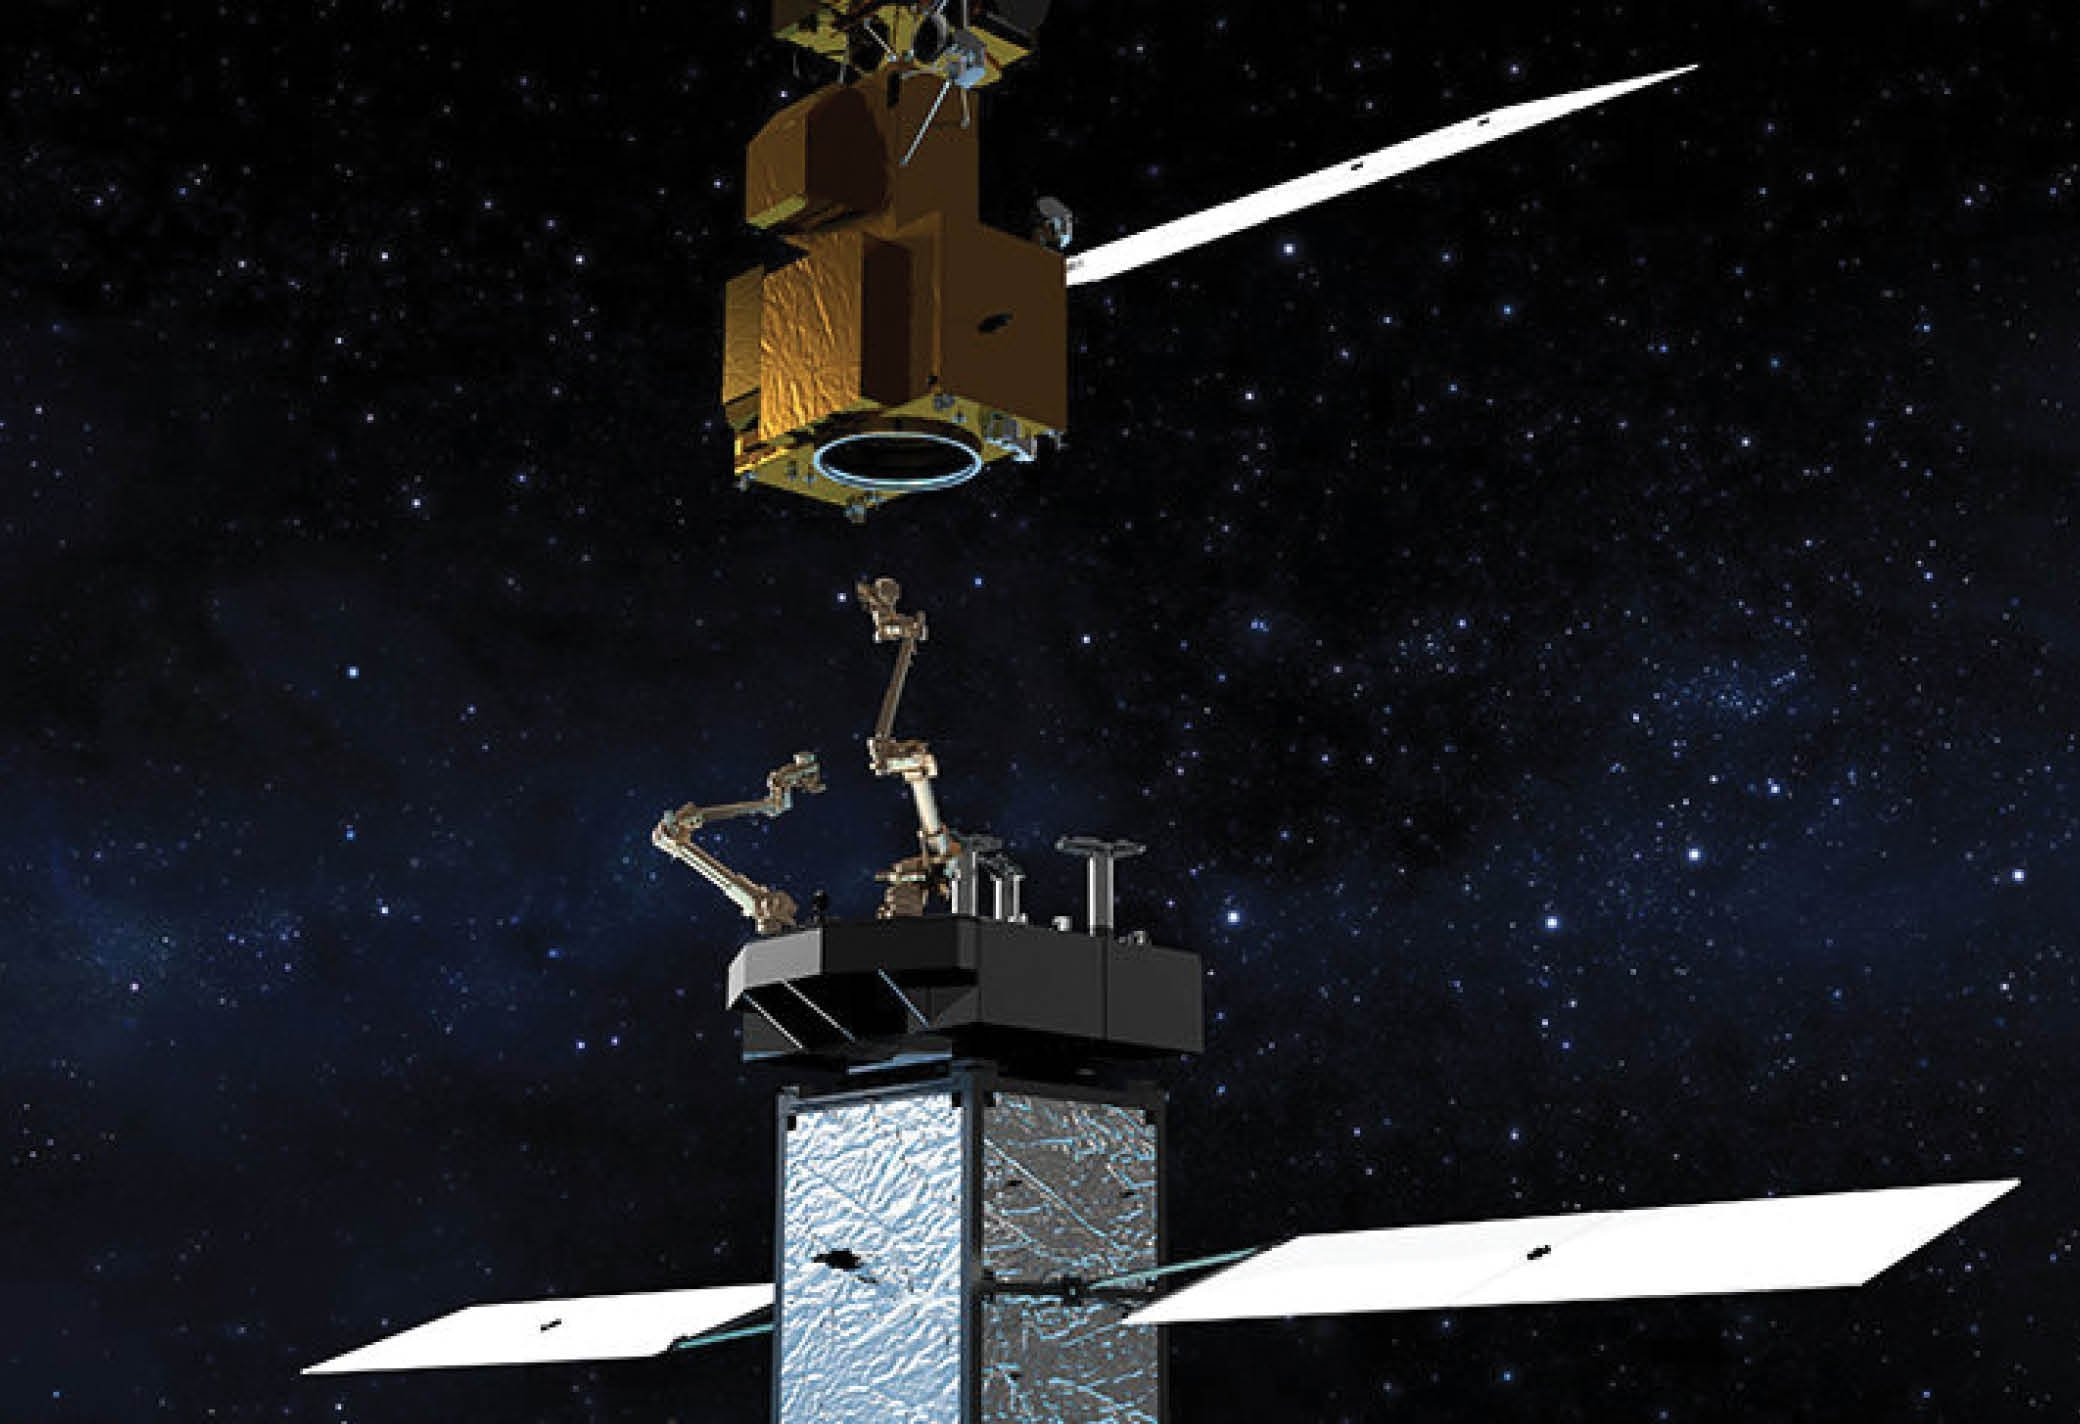 On-orbit satellite servicing benefits and challenges